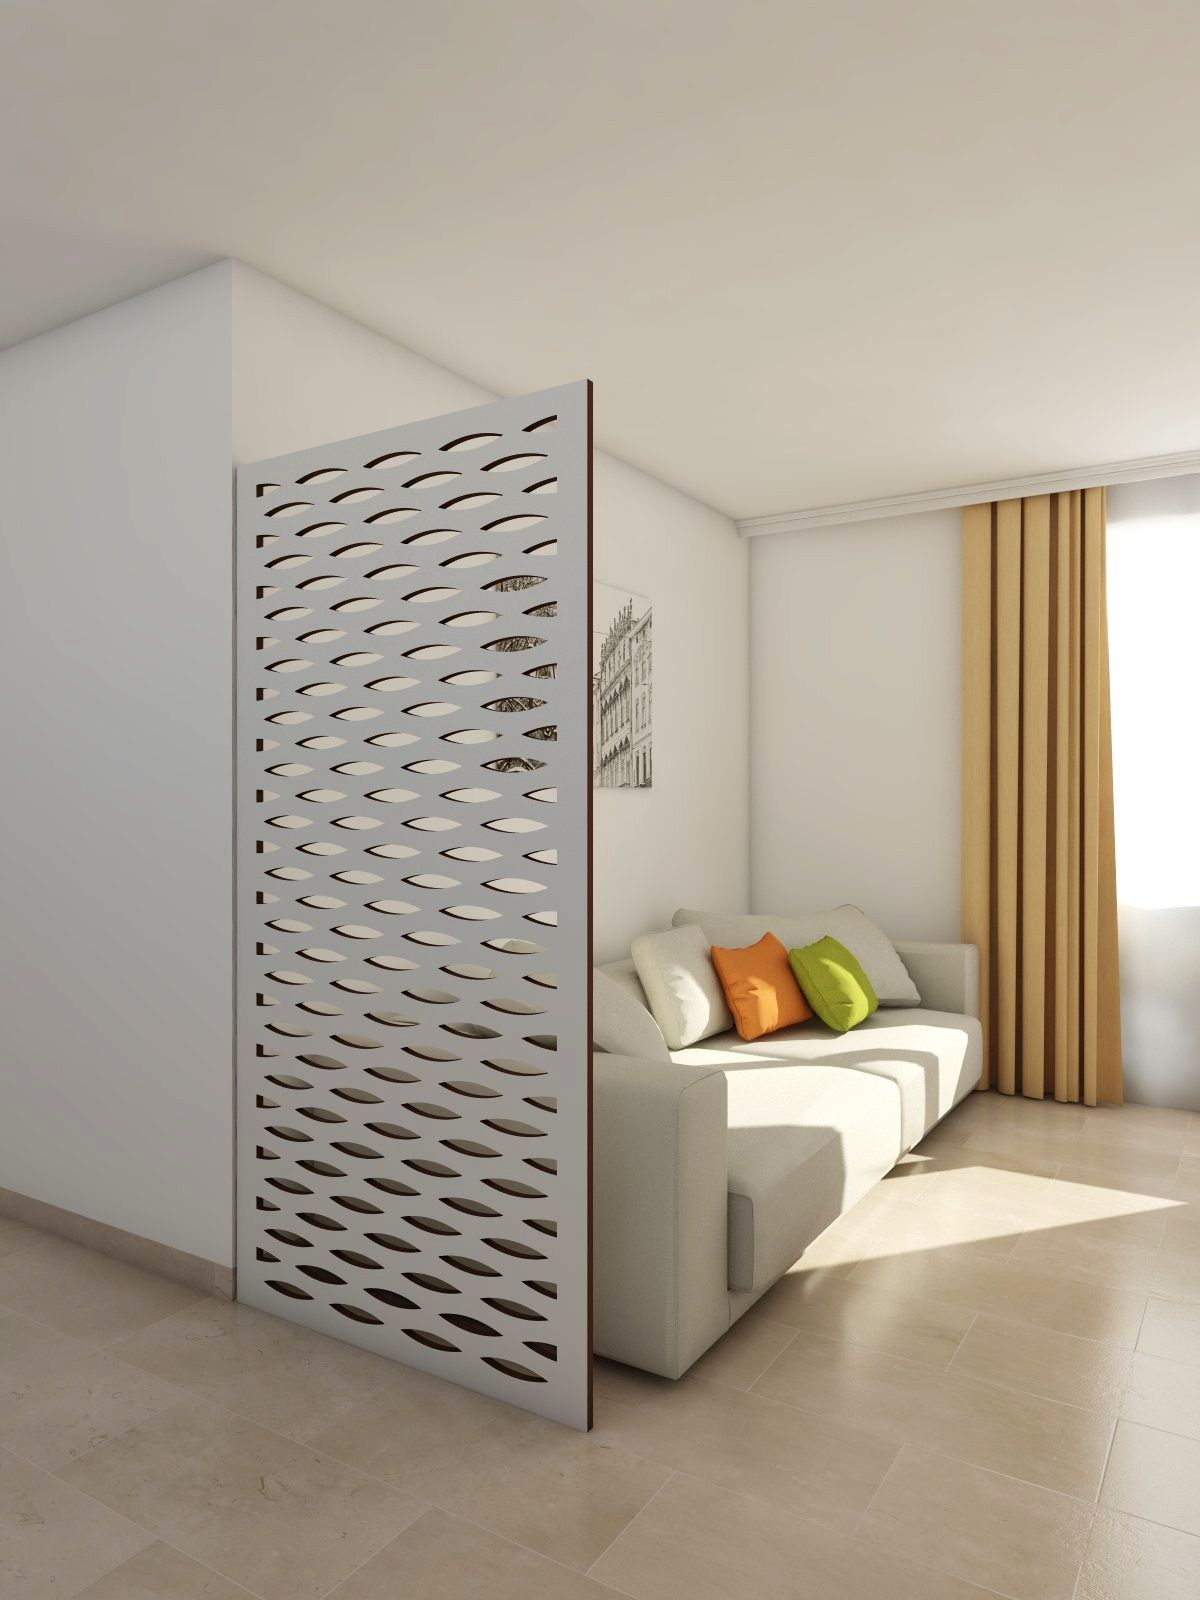 claustra room divider cateye en gris dans un salon nos paravents room dividers. Black Bedroom Furniture Sets. Home Design Ideas